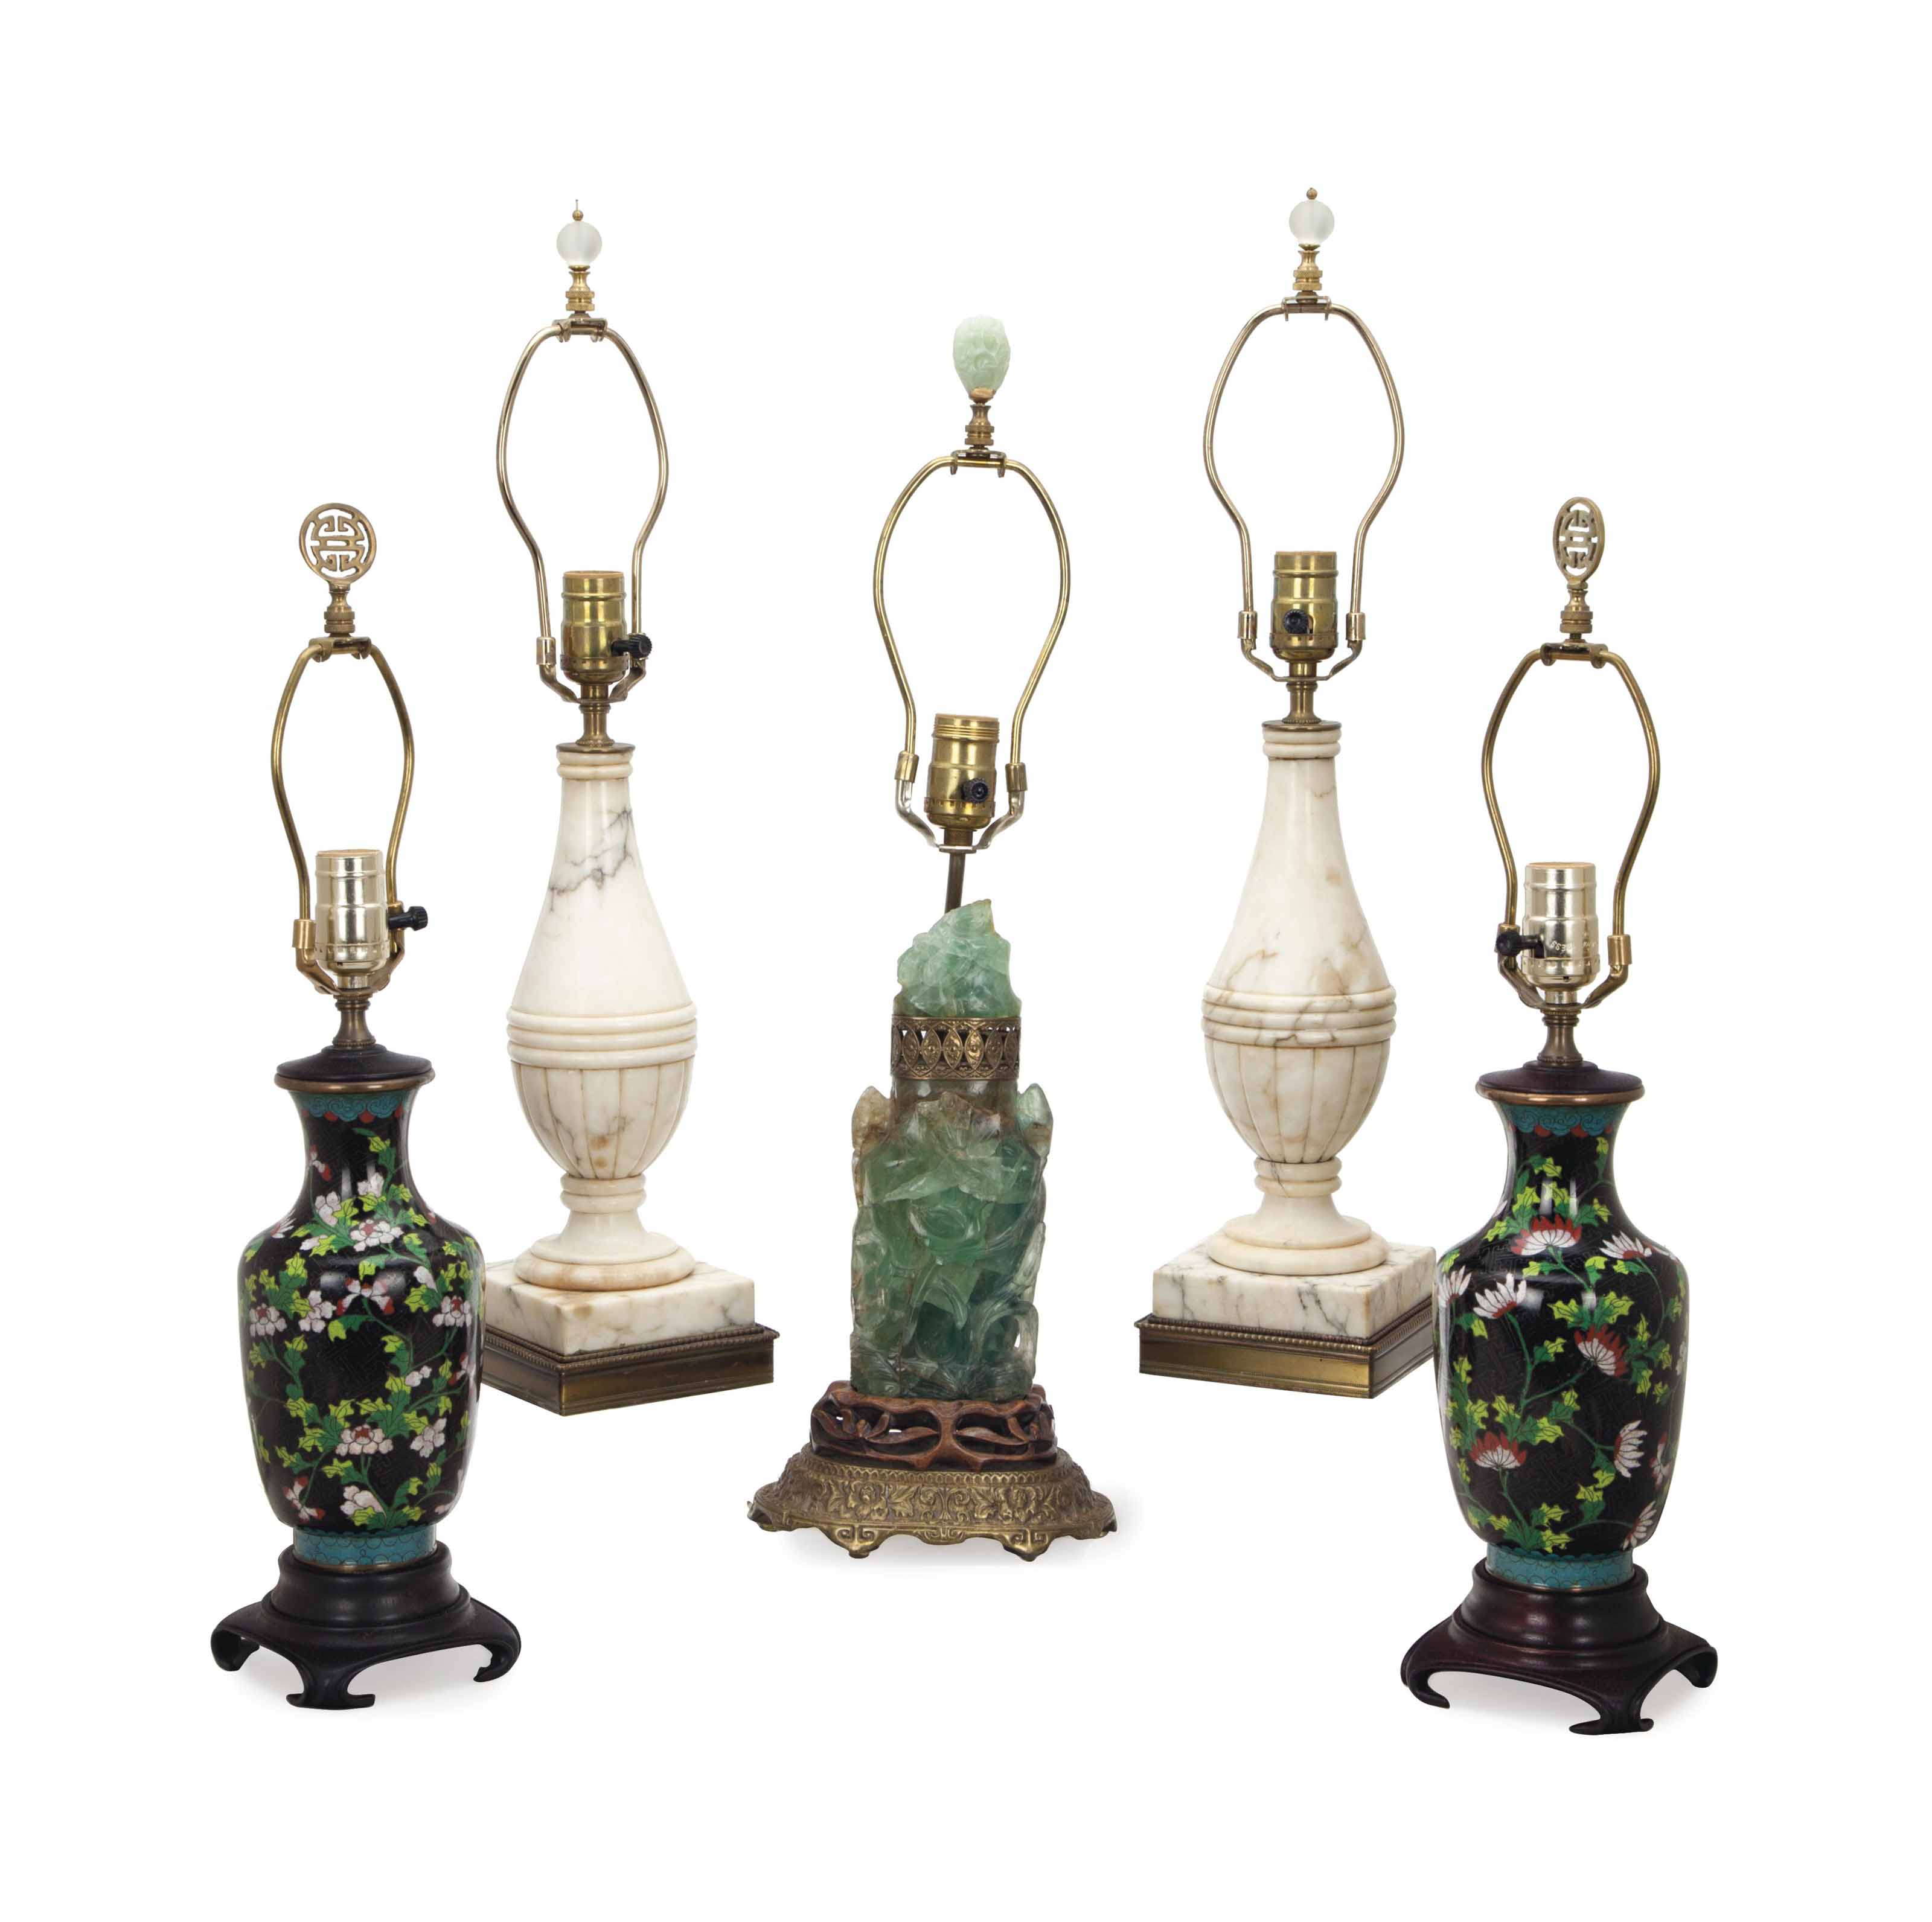 A PAIR OF WHITE MARBLE LAMPS, A PAIR OF CHINESE CLOISONNE-ENAMEL BALUSTER-FORM LAMPS AND A CHINESE CARVED-HARDSTONE COVERED VASE MOUNTED AS A LAMP,